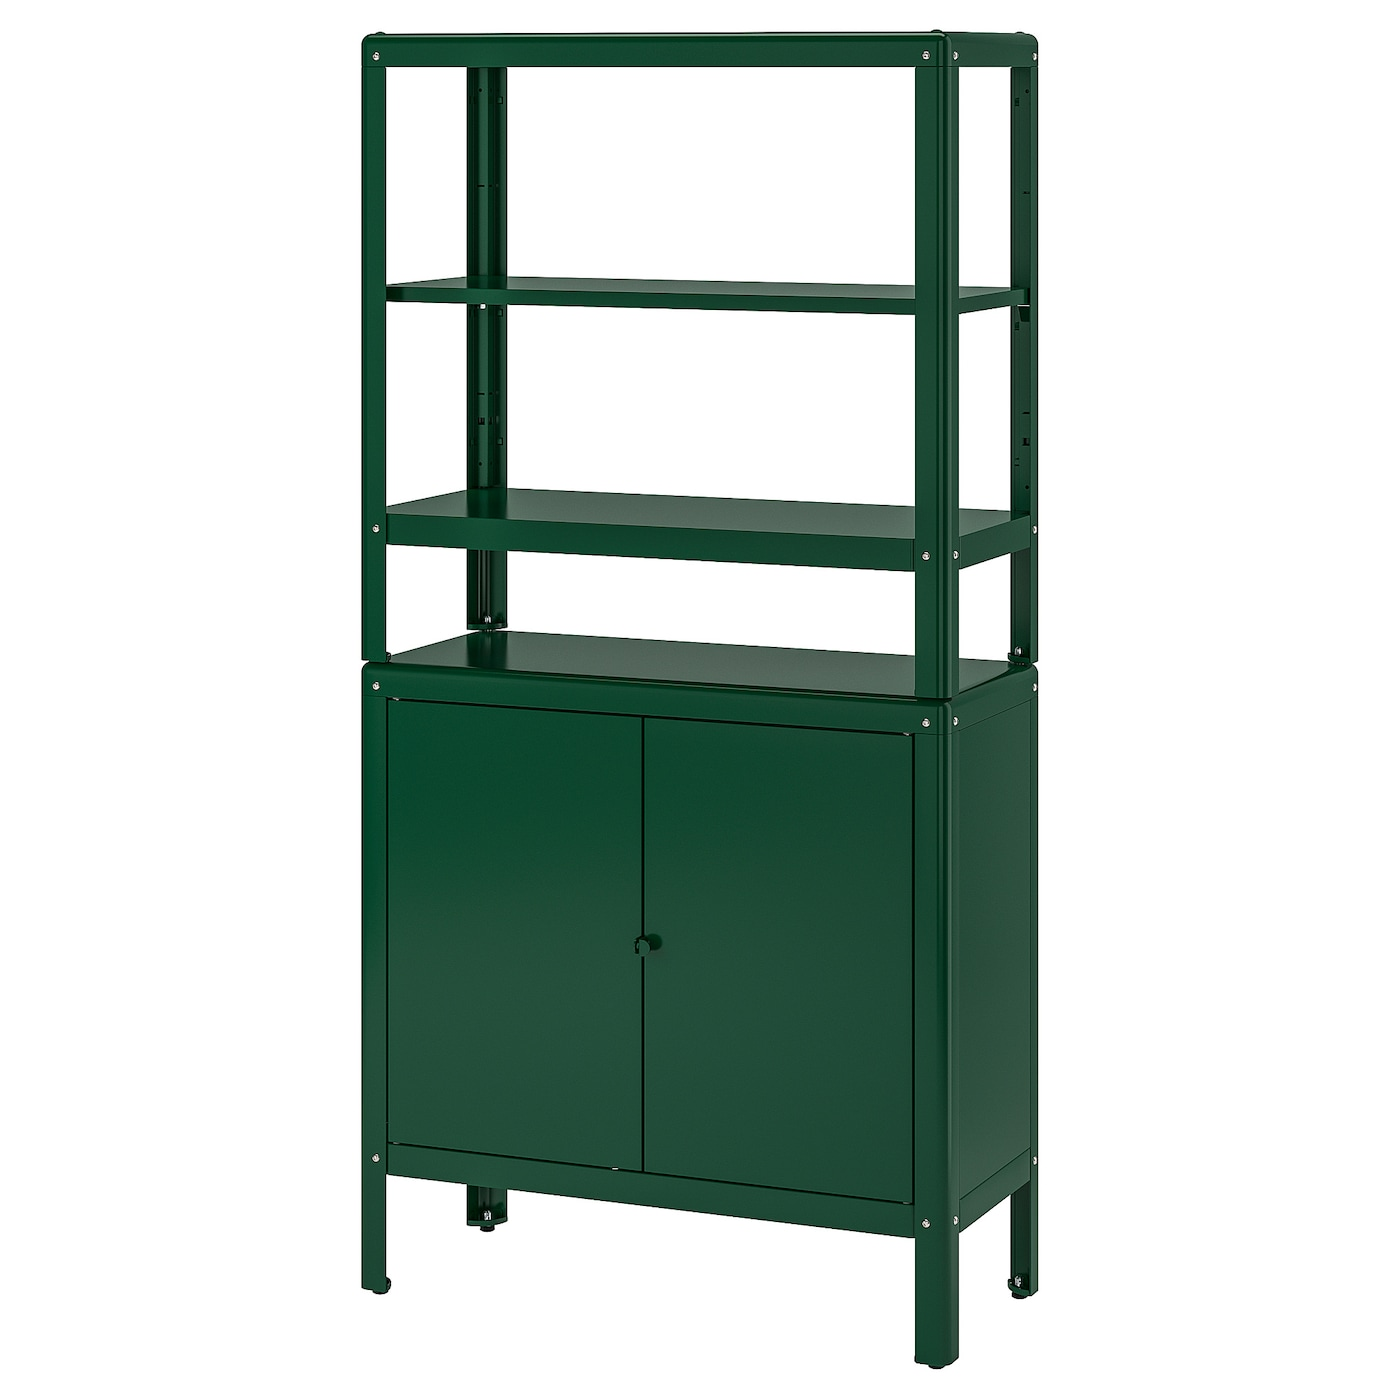 Shelving Unit With Cabinet Green